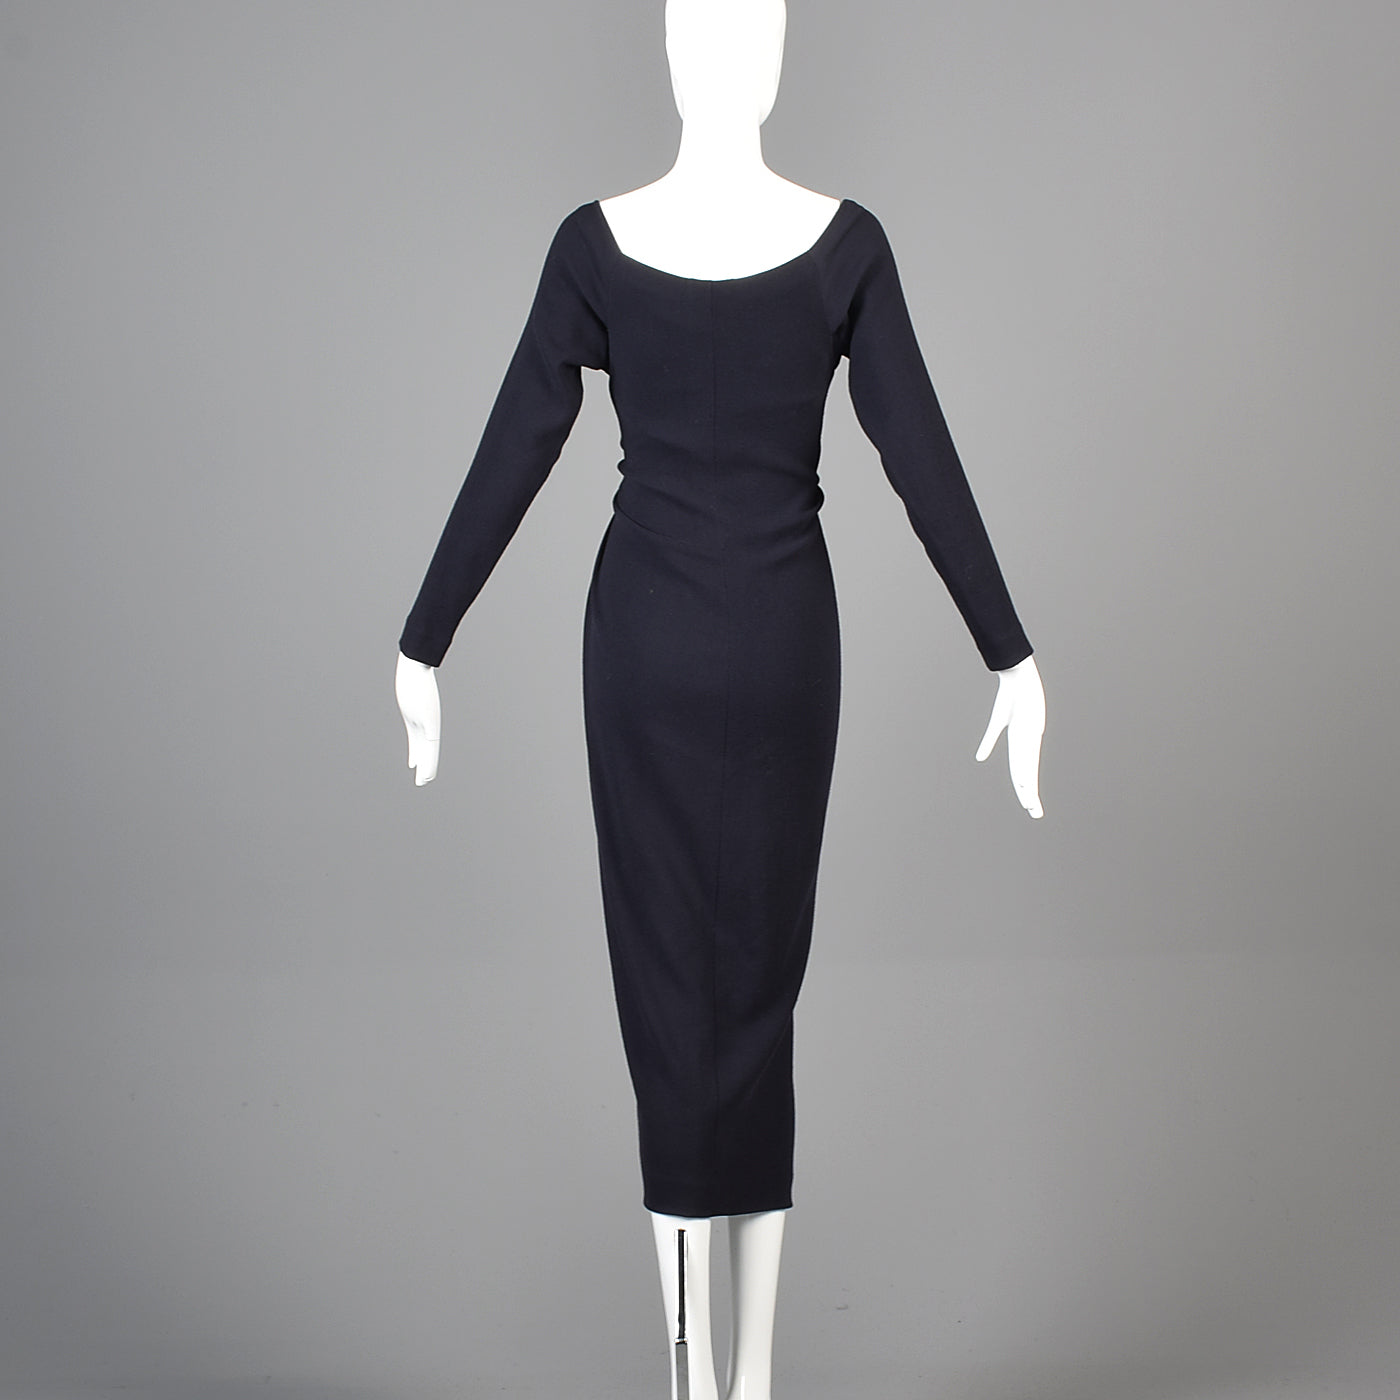 1990s Donna Karan Black Label Body Suit Dress worn by Susan Lucci